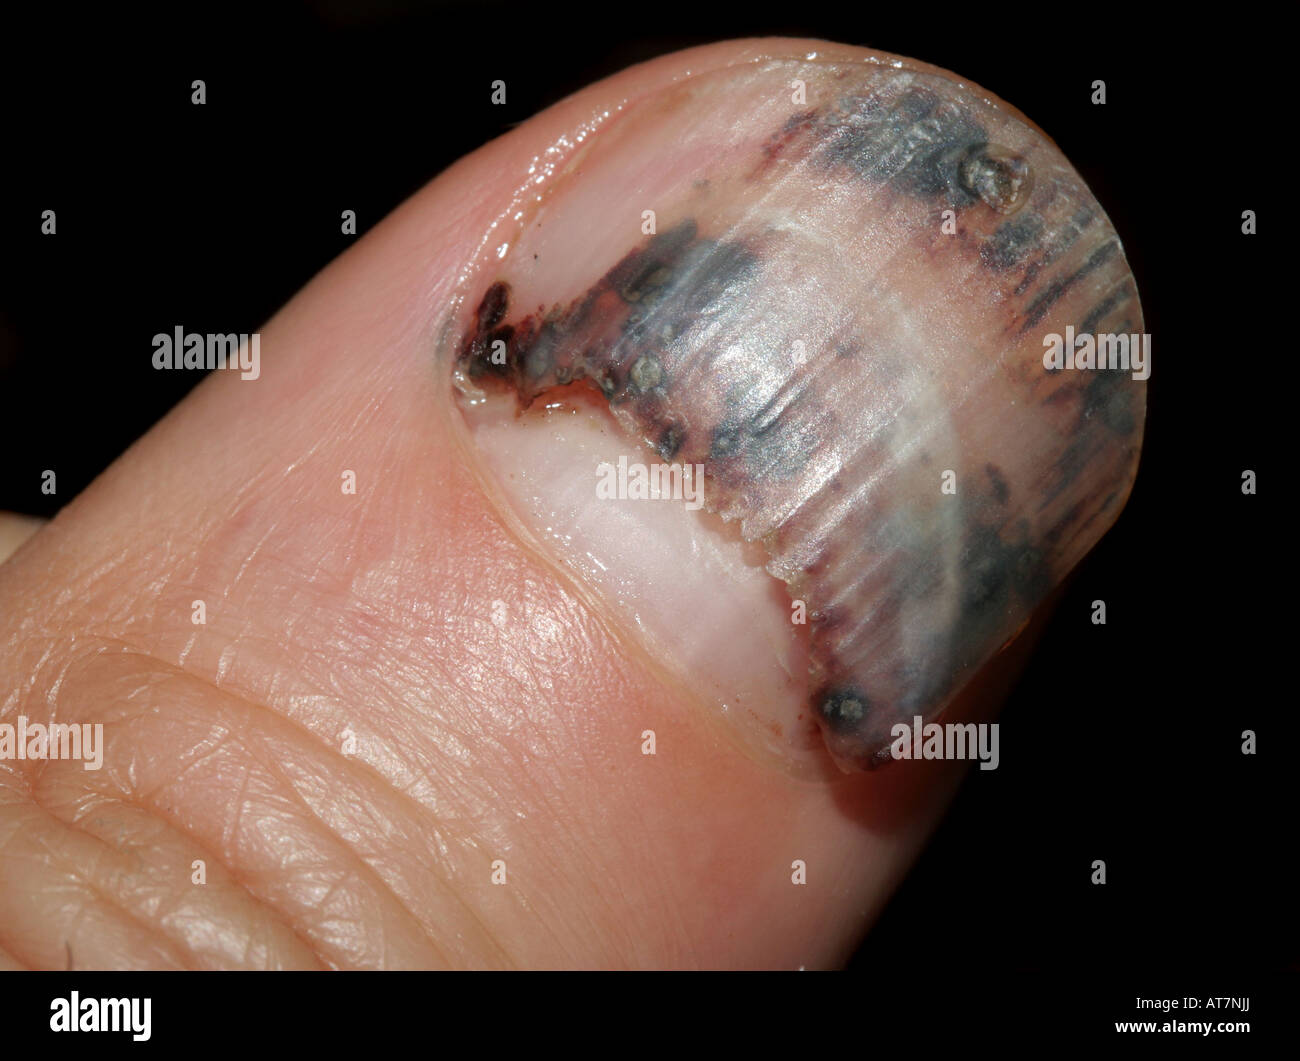 Injured thumbnail about to fall off Stock Photo: 16229801 - Alamy